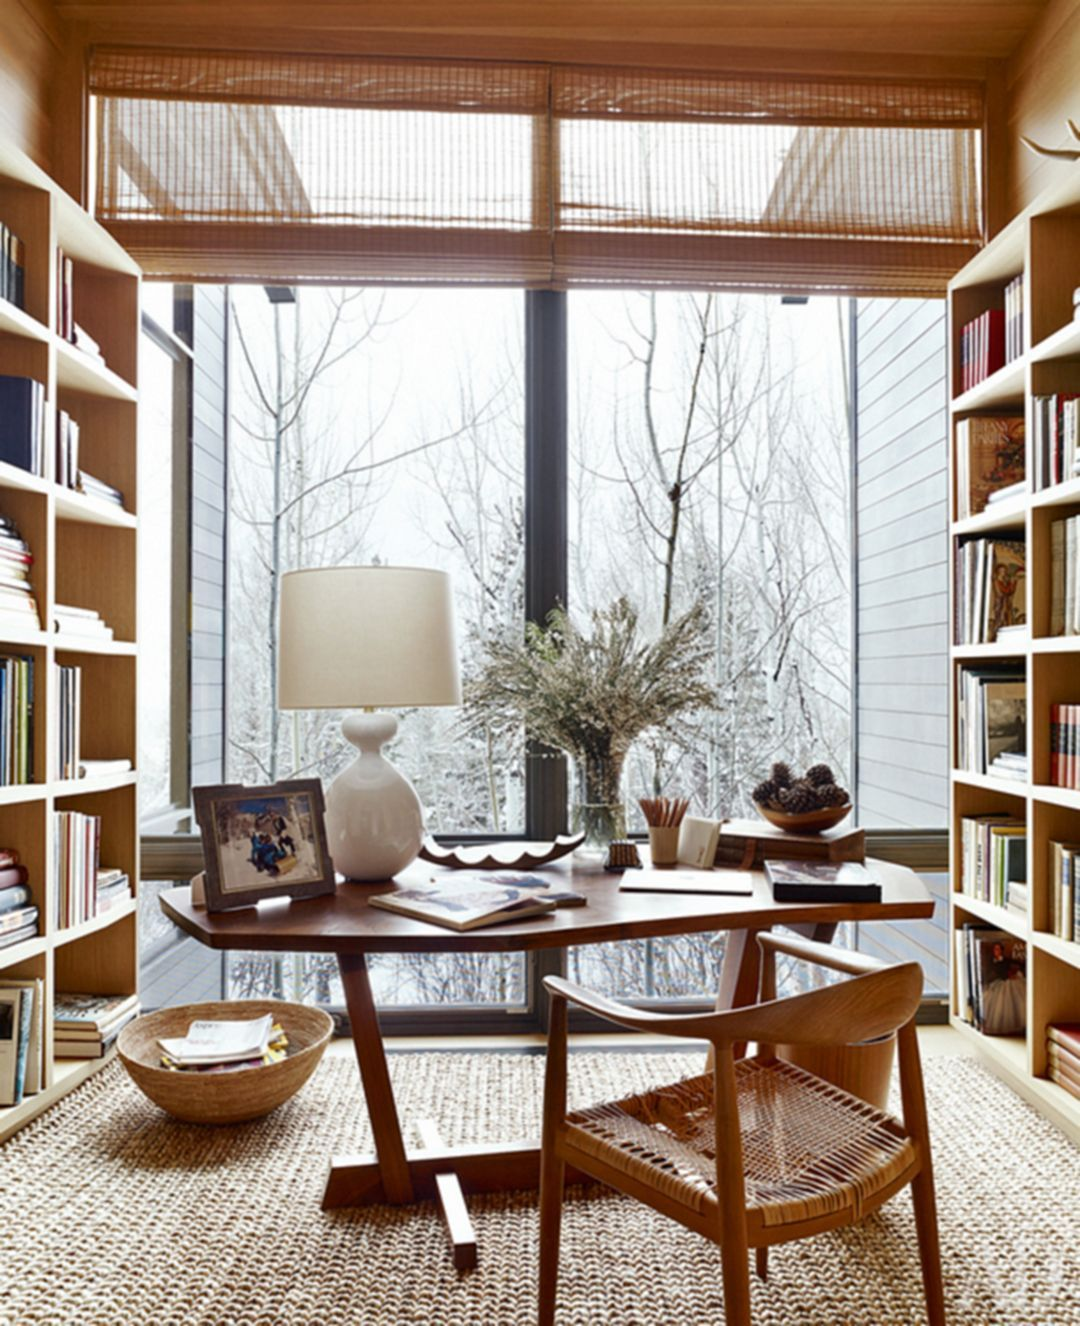 40+ Awesome Home Office Design Ideas For Enjoyable Working | Office ...